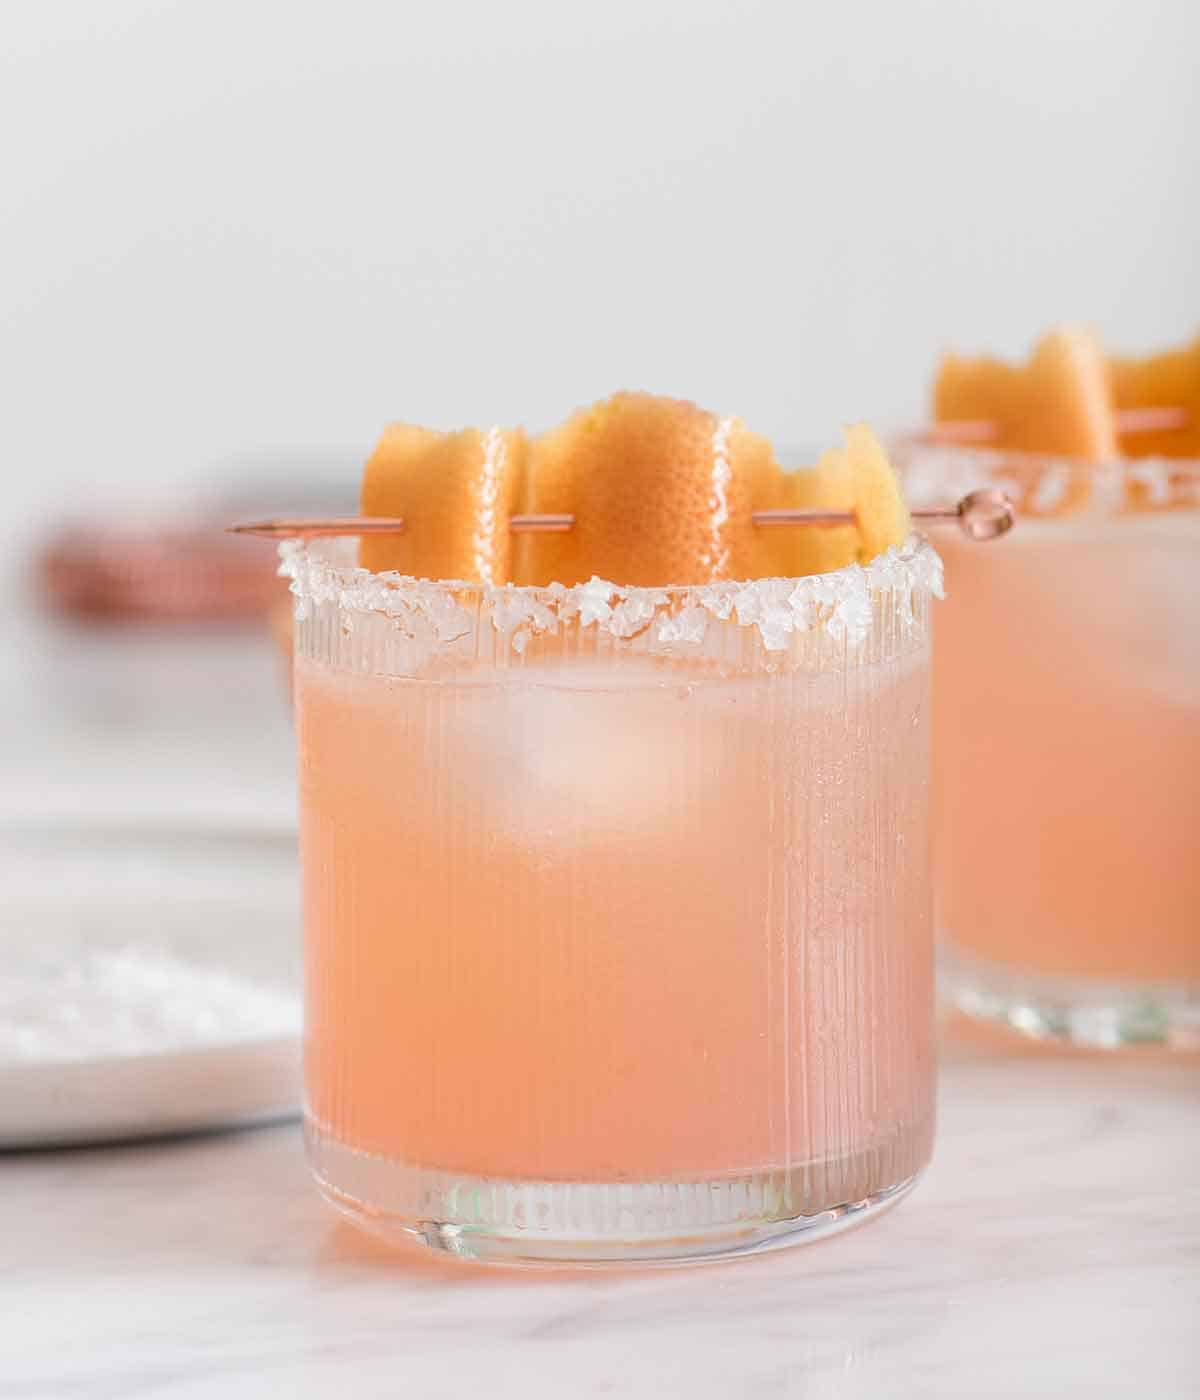 A glass of paloma with a salted rim with a grapefruit peel garnish on top.